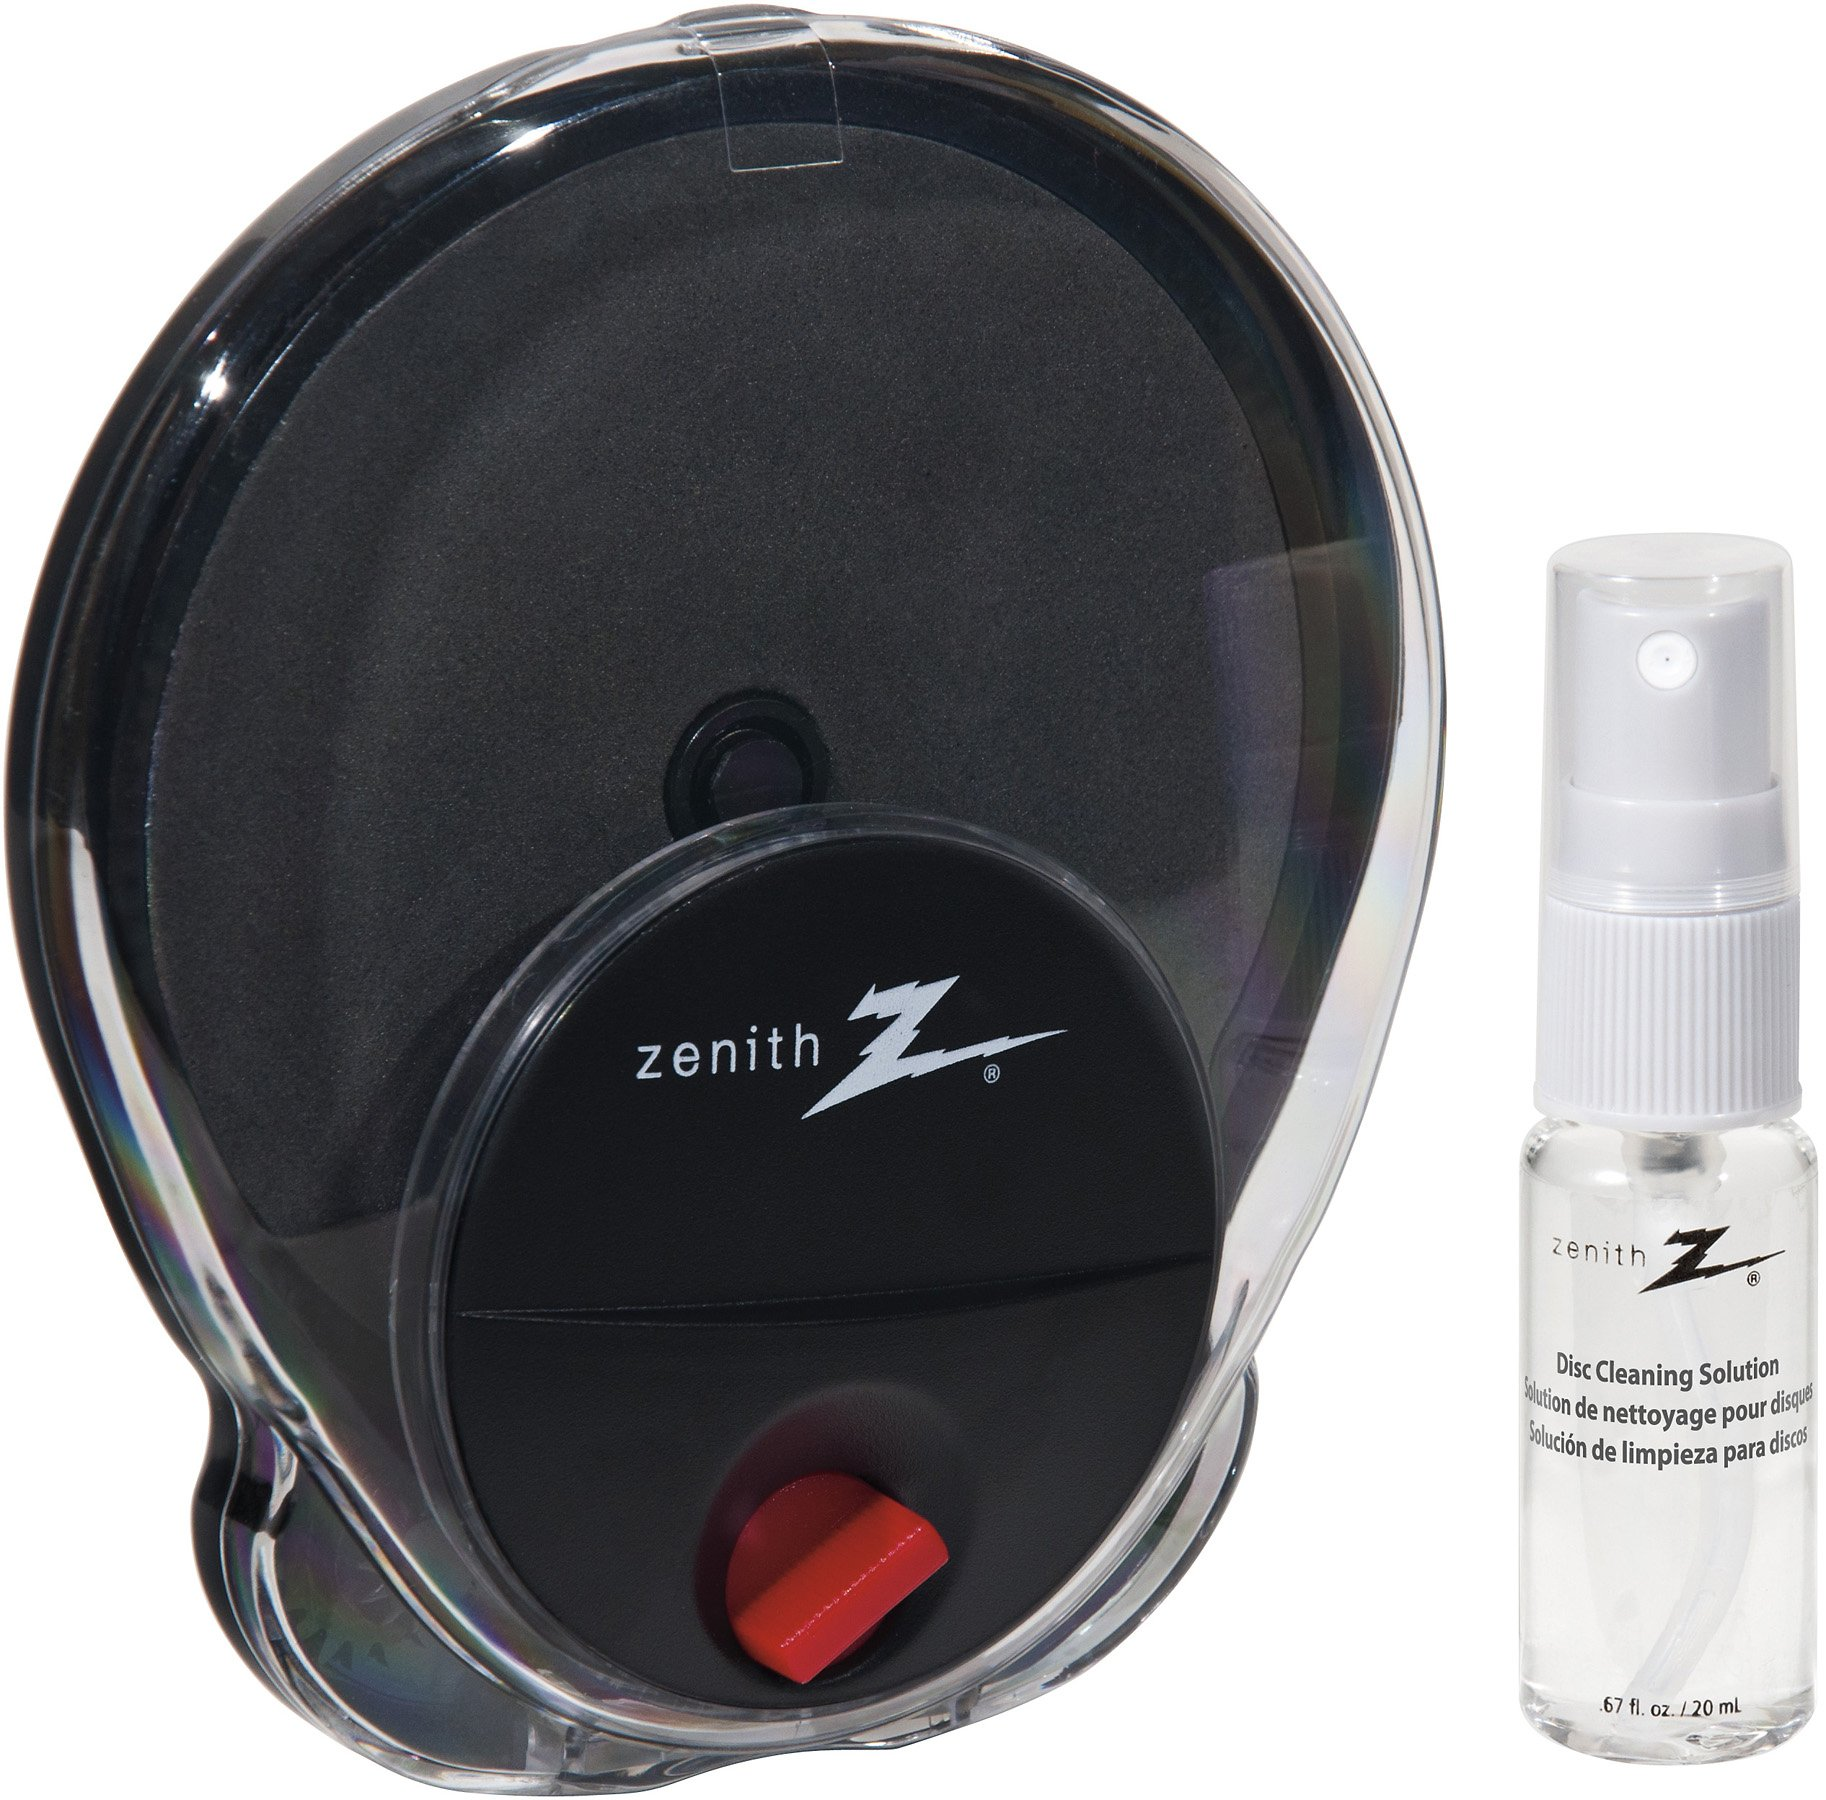 AmerTac - Zenith CD1001DVDCLR Radial Disc Cleaning System